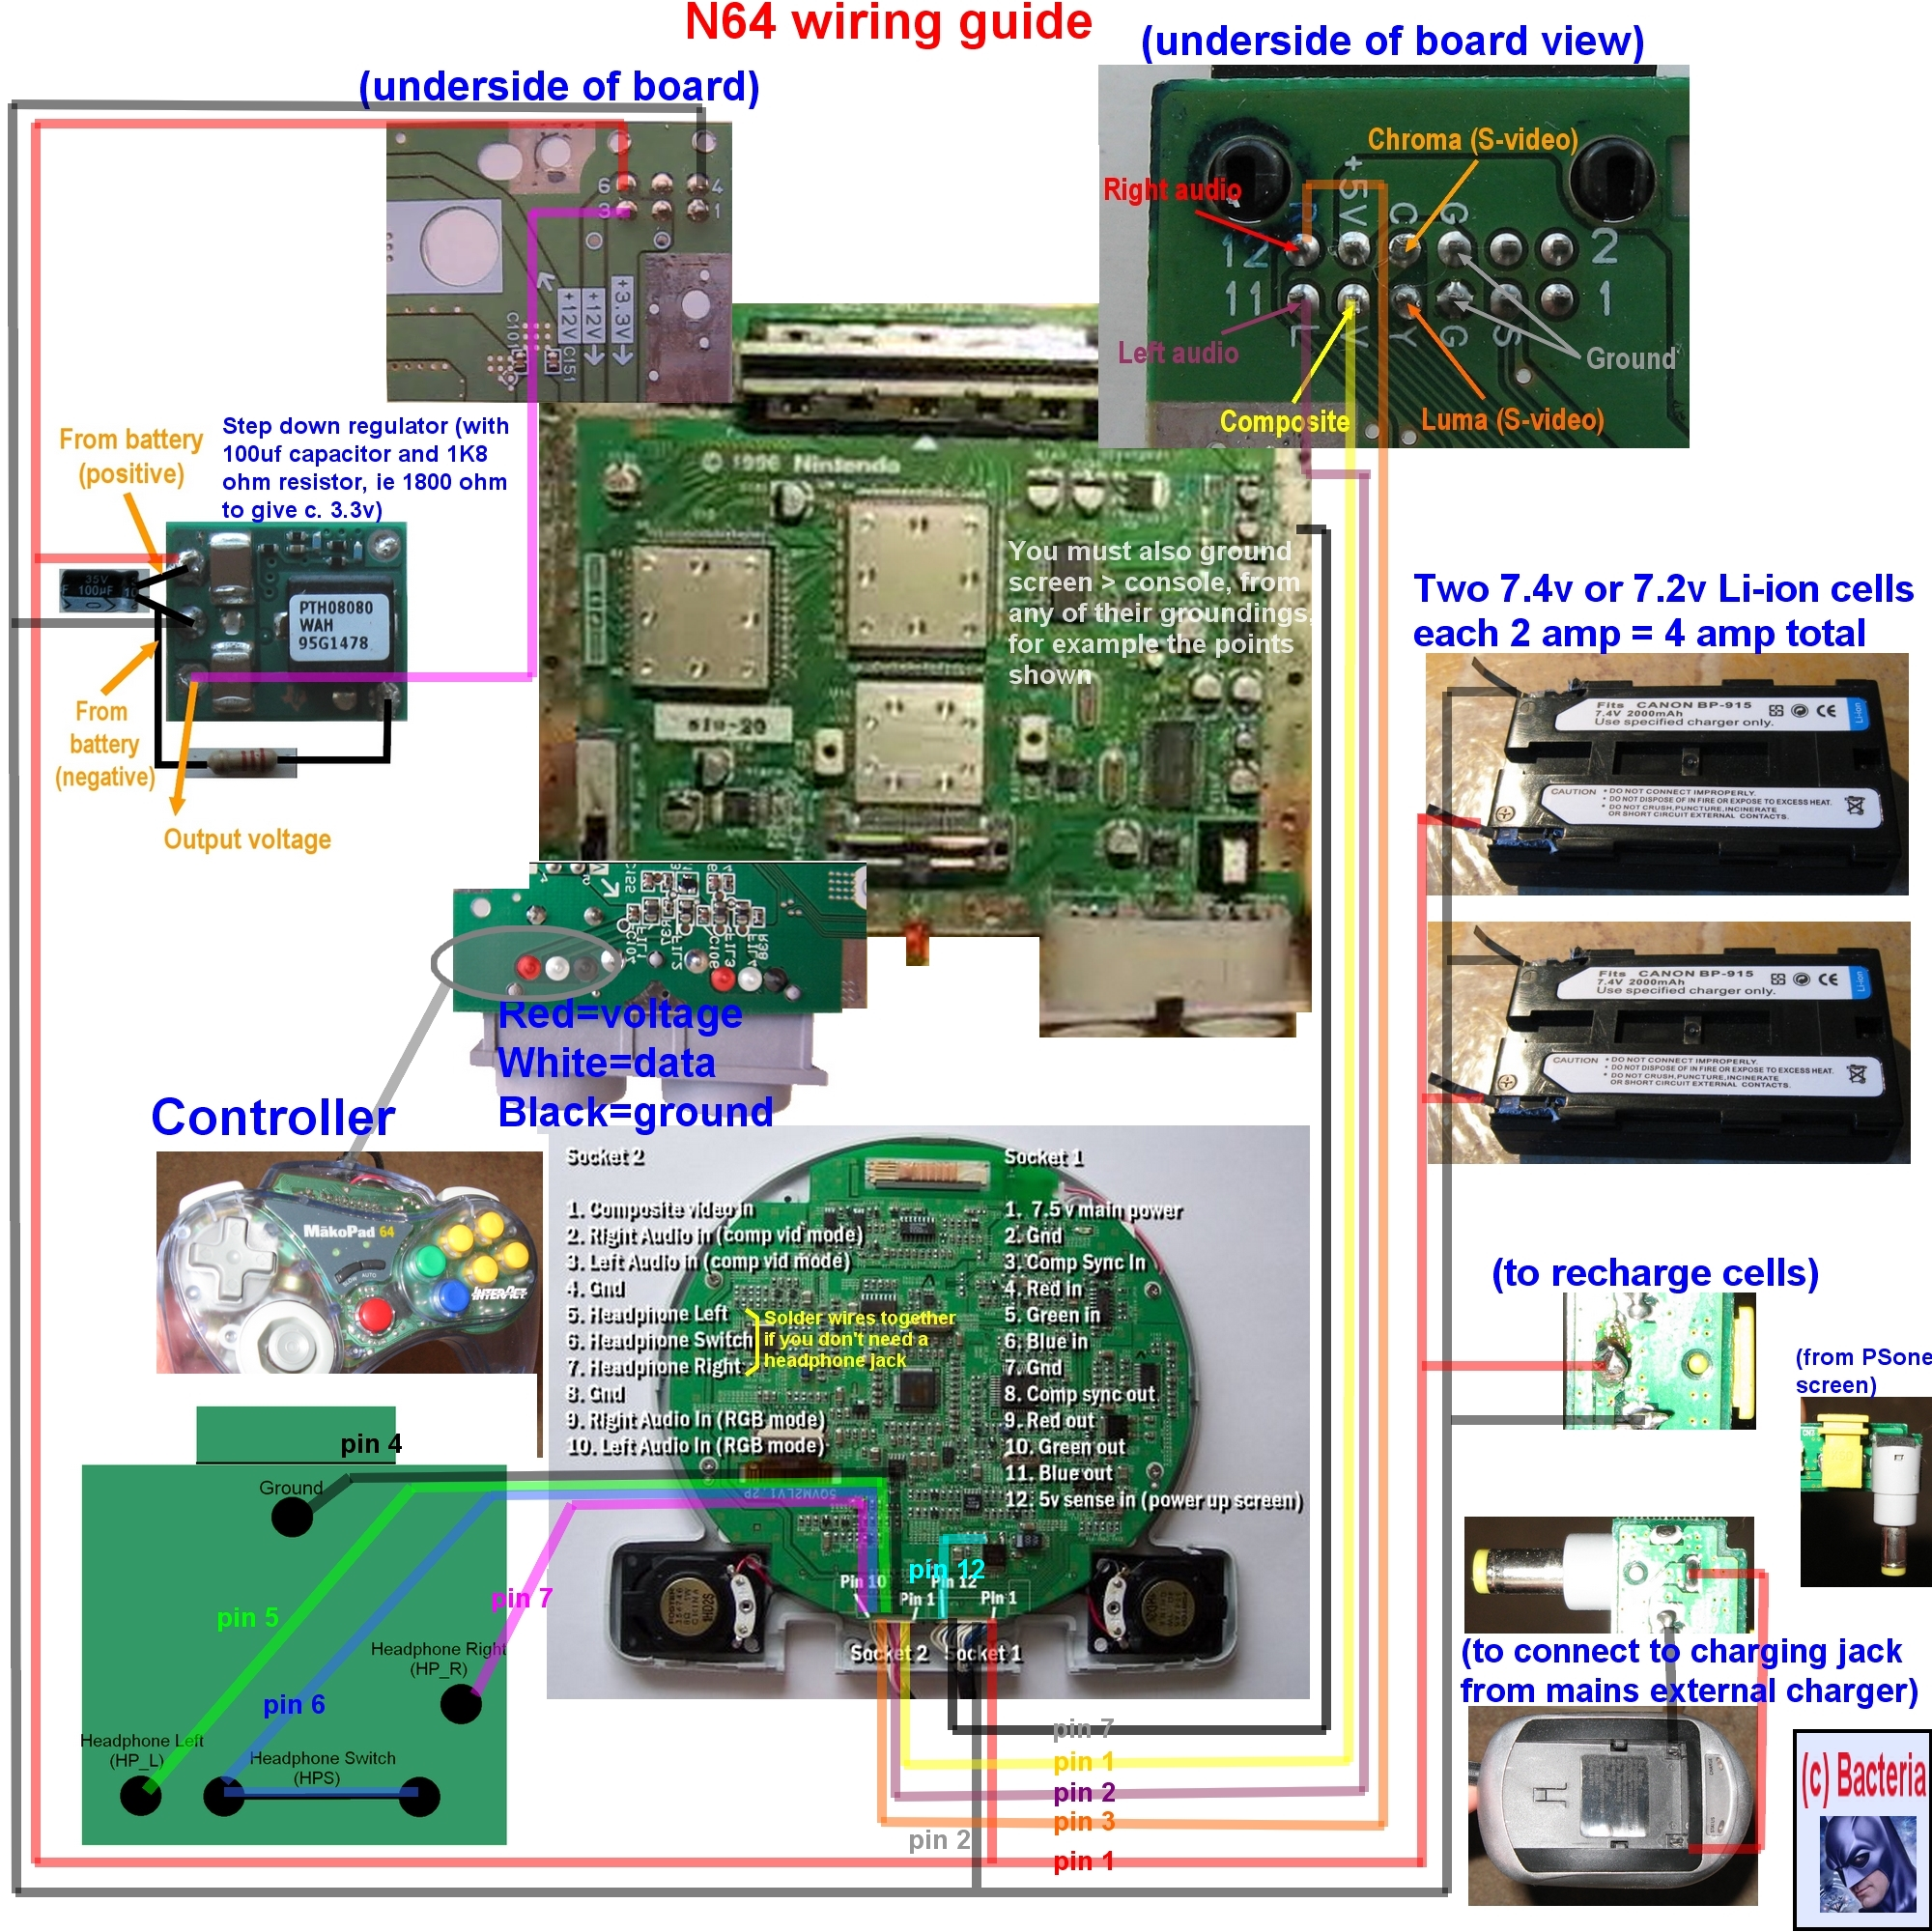 n64 wiring guide1 nintendo n64 n64 controller wiring diagram at eliteediting.co